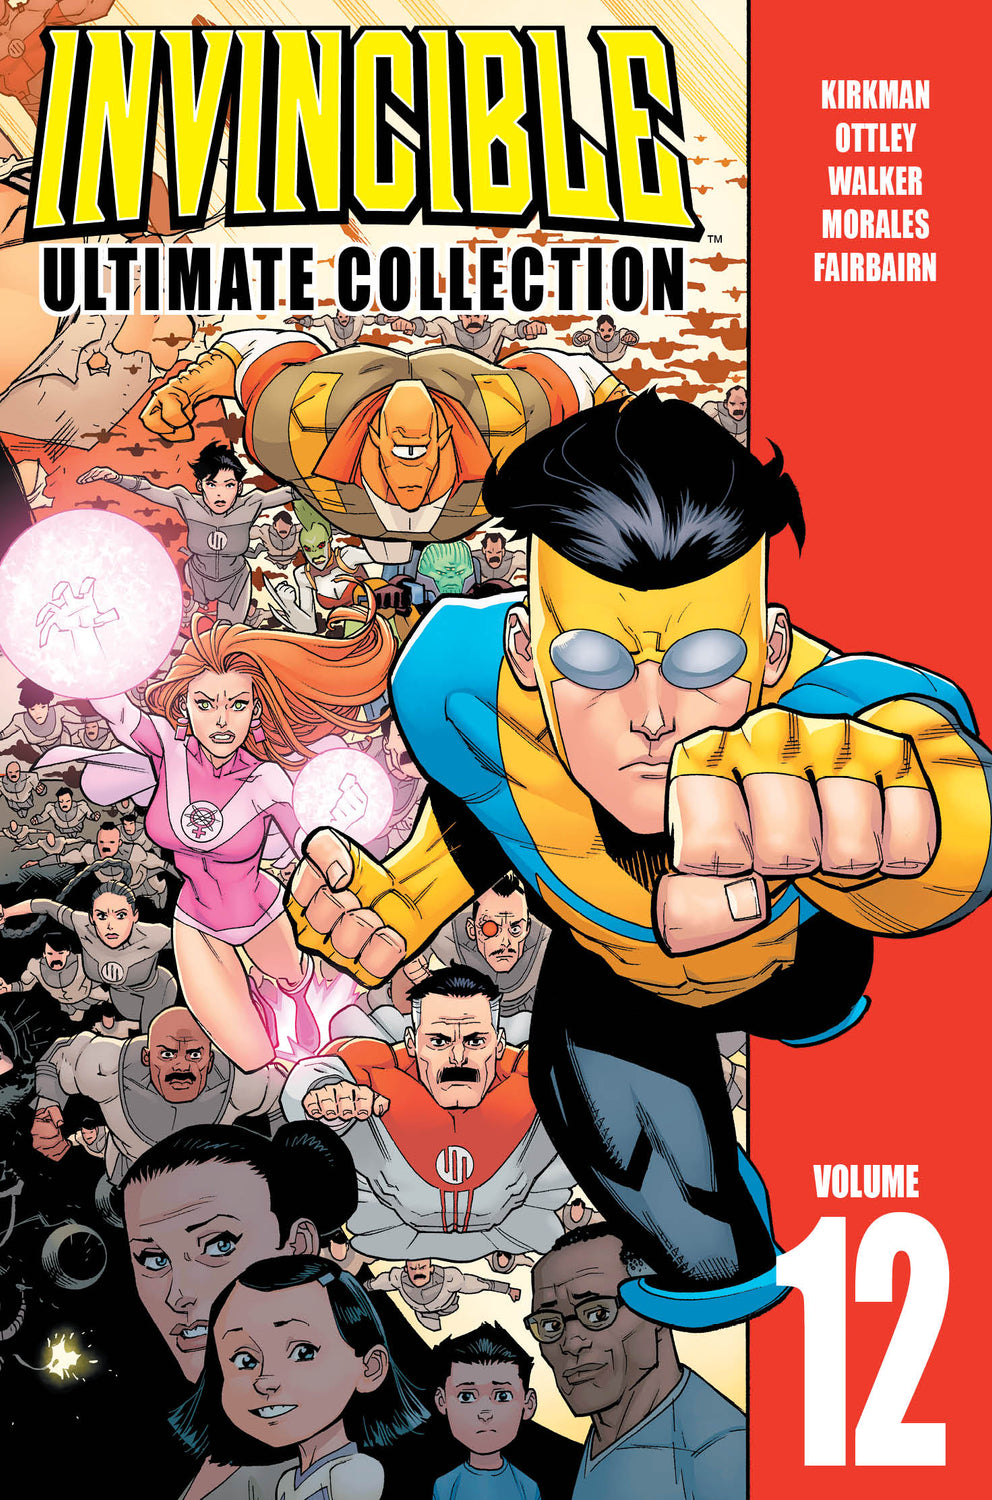 INVINCIBLE: Ultimate Hardcover Volume 12 - Issues 133-144